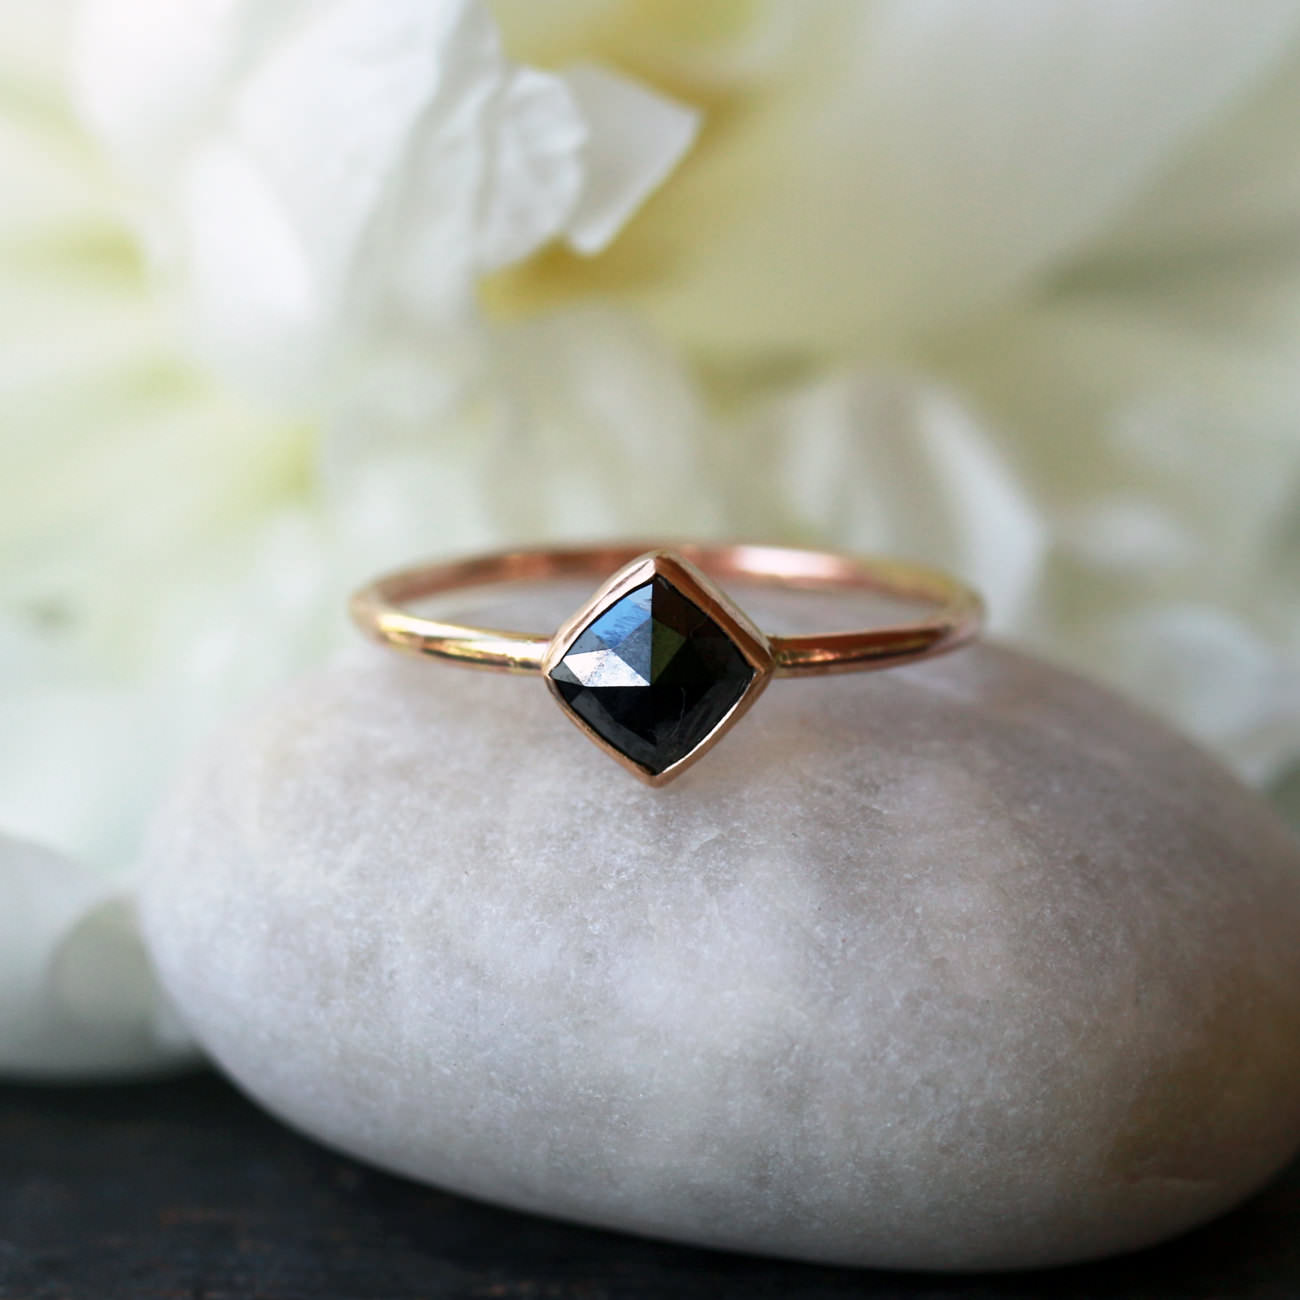 Square Rose Cut Black Diamond Ring